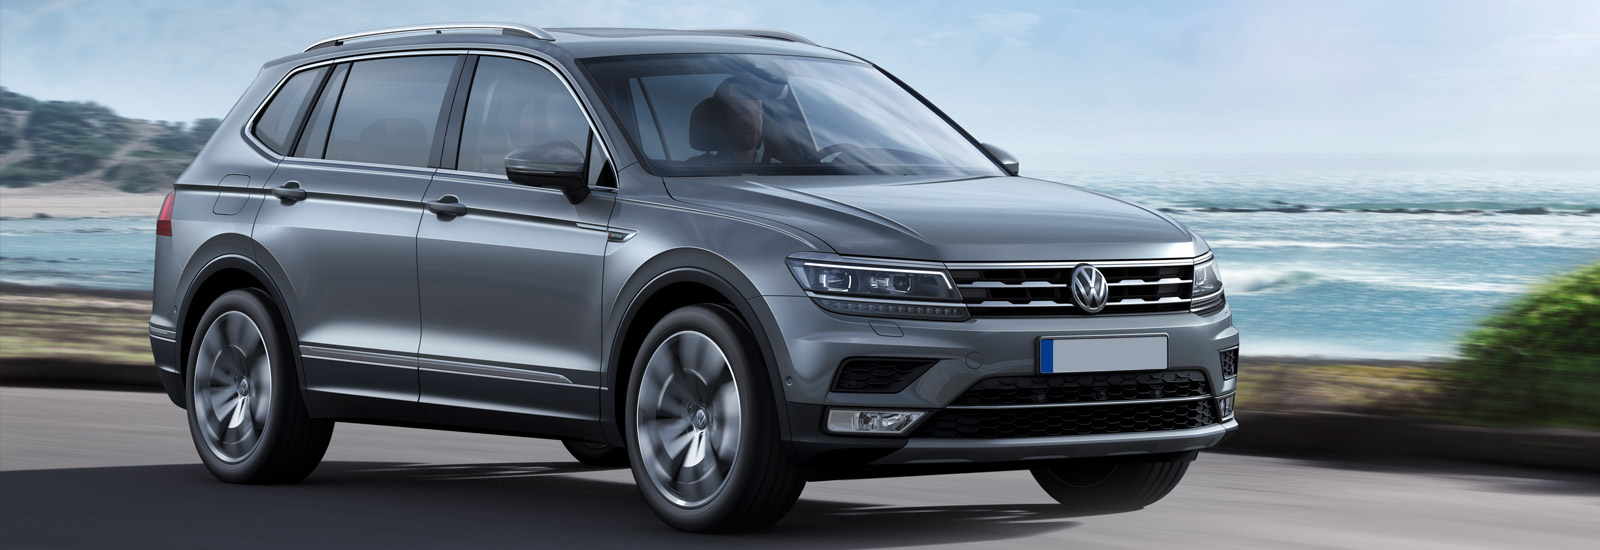 is vw touareg a 7 seater car reviews 2018. Black Bedroom Furniture Sets. Home Design Ideas